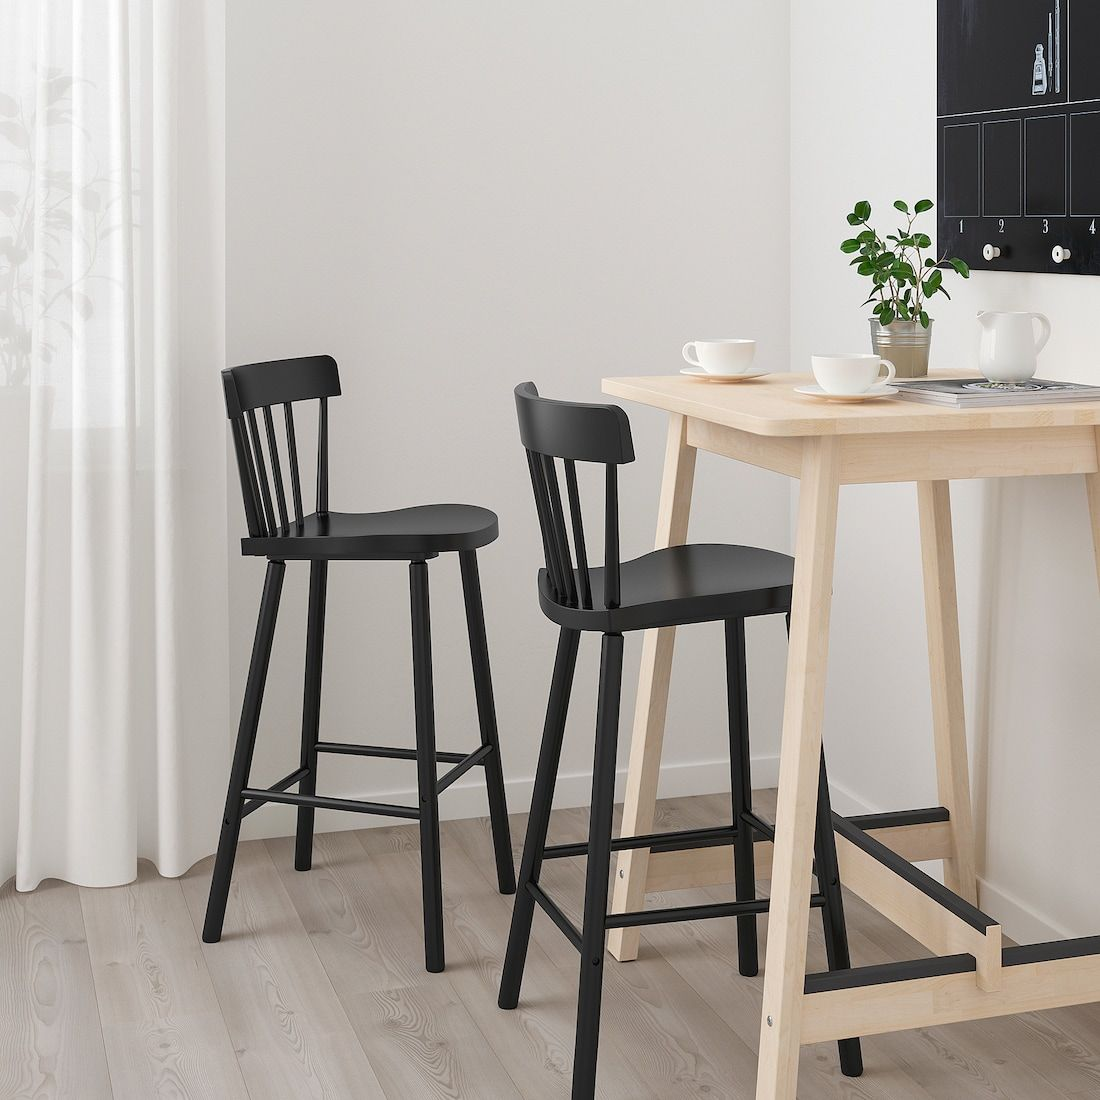 Marvelous Norraker Norraryd Bar Table And 2 Bar Stools Birch Pabps2019 Chair Design Images Pabps2019Com